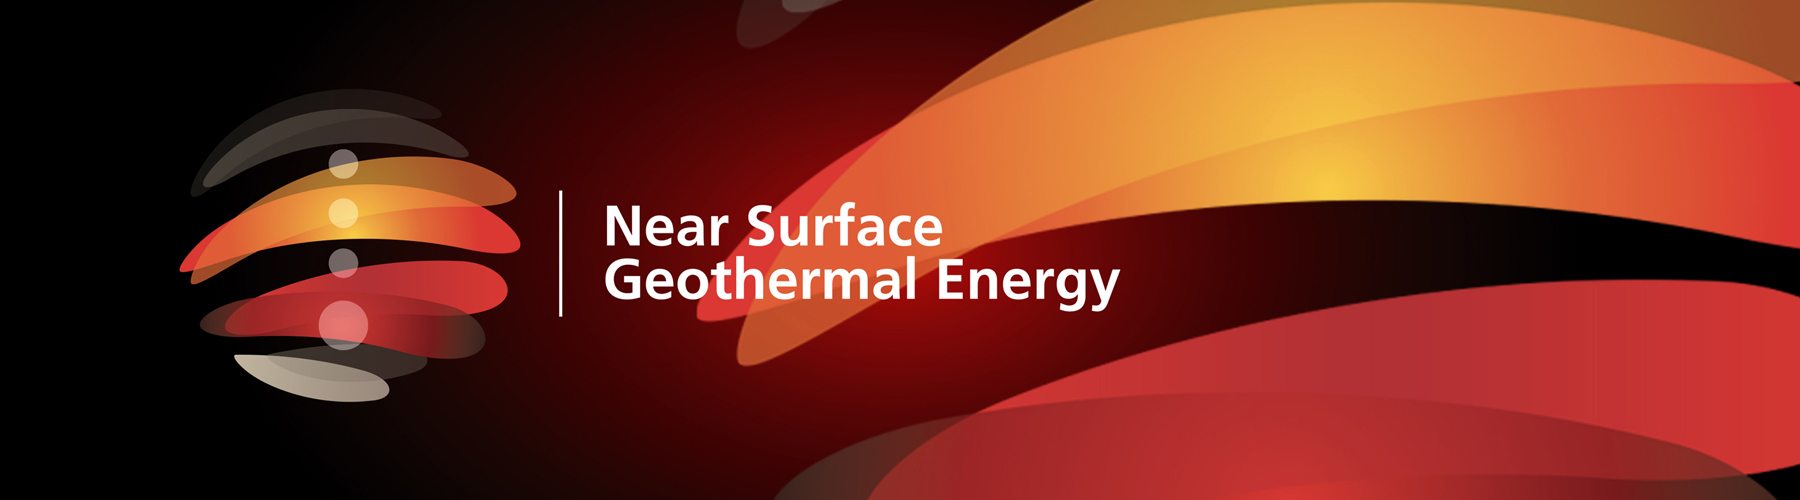 Near Surface Geothermal Energy Logo Banner